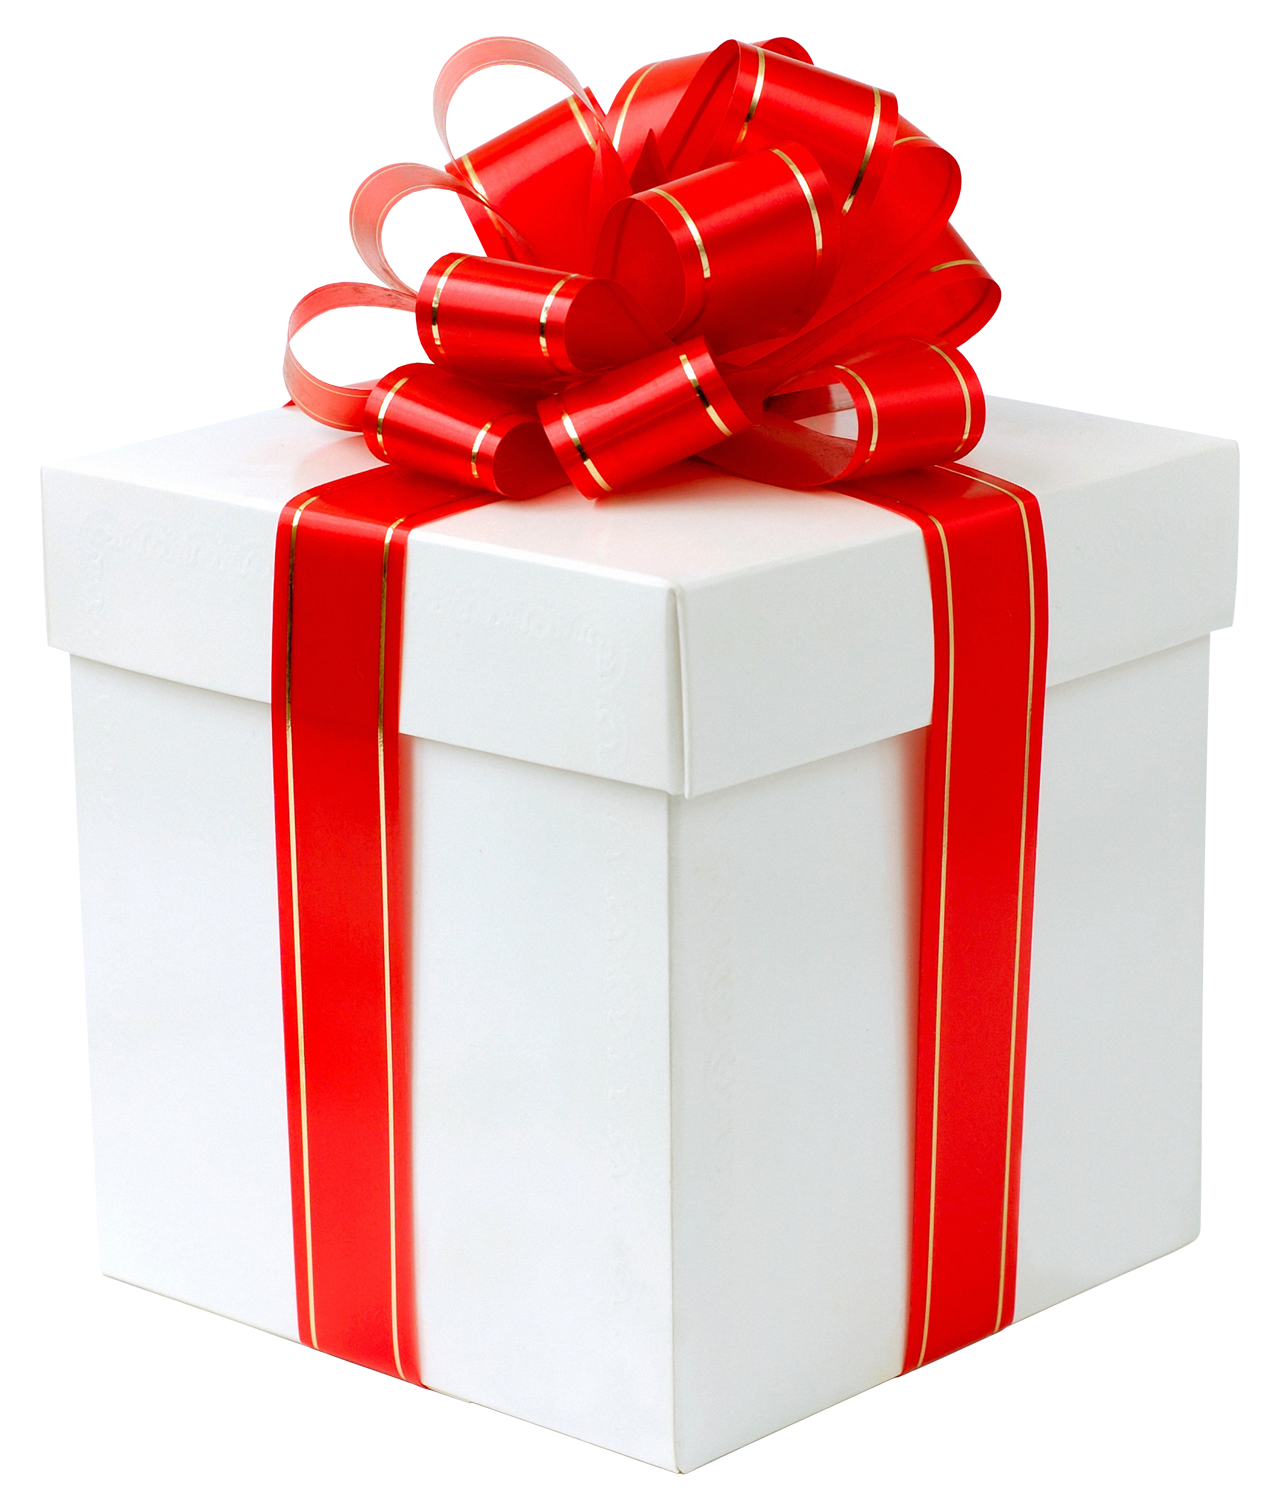 White gift box with. Boxes clipart transparent